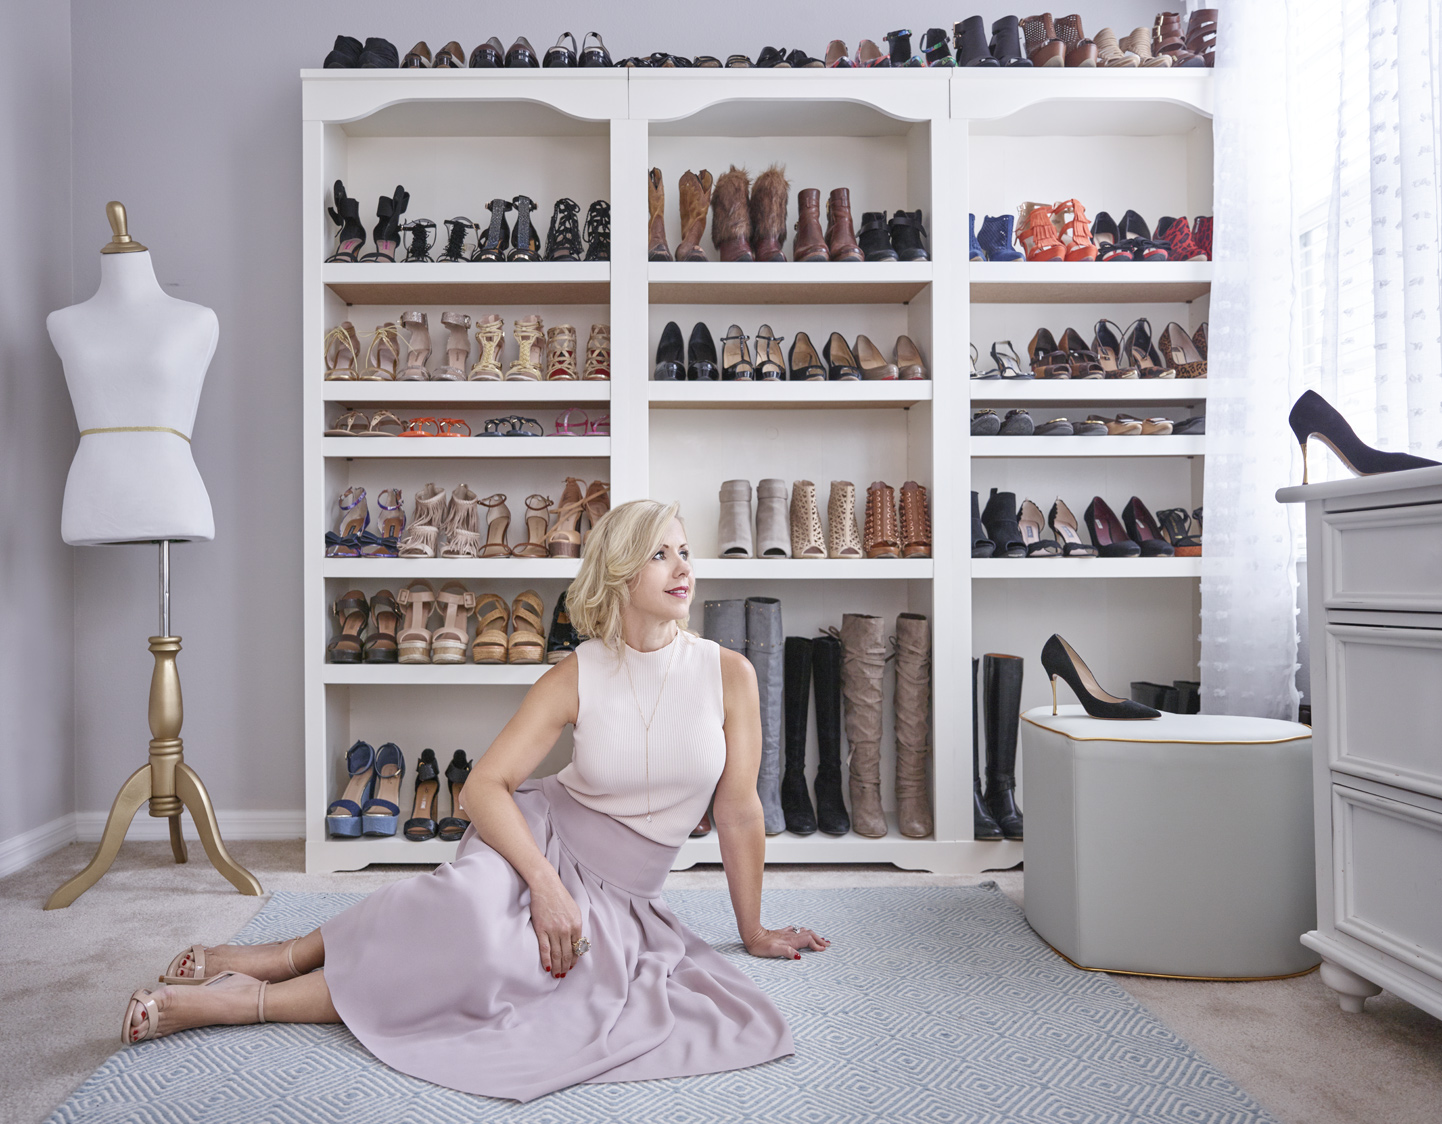 The Shoe Maven |  Tanya Walker |  Lifestyle Advertising Portrait | Miami